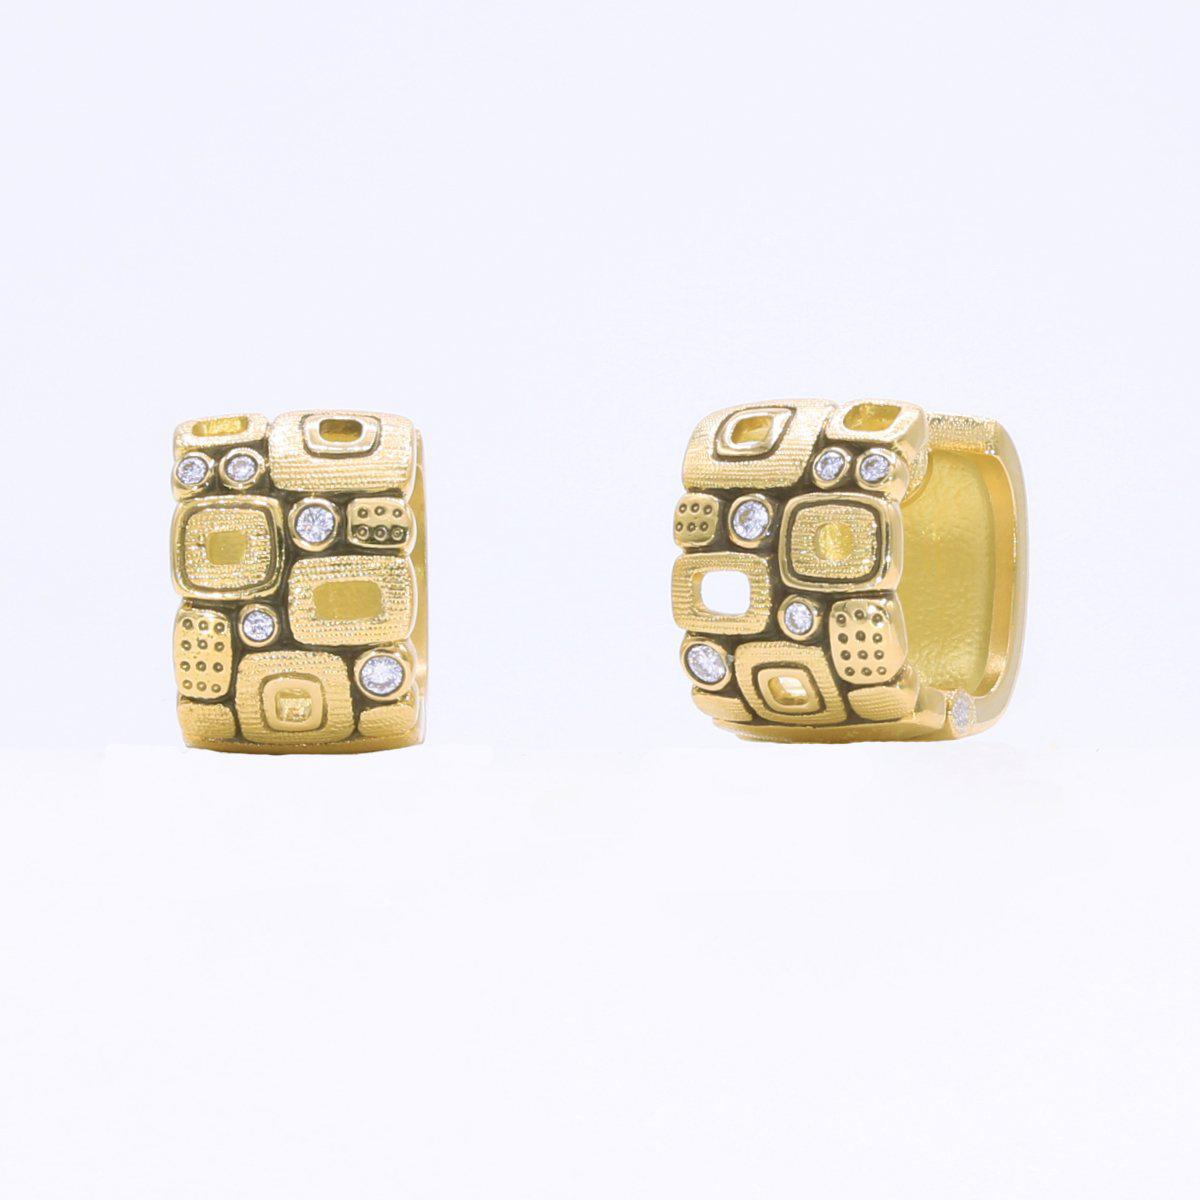 18K Little Windows Diamond Huggie Earrings - E-83-Alex Sepkus-Renee Taylor Gallery